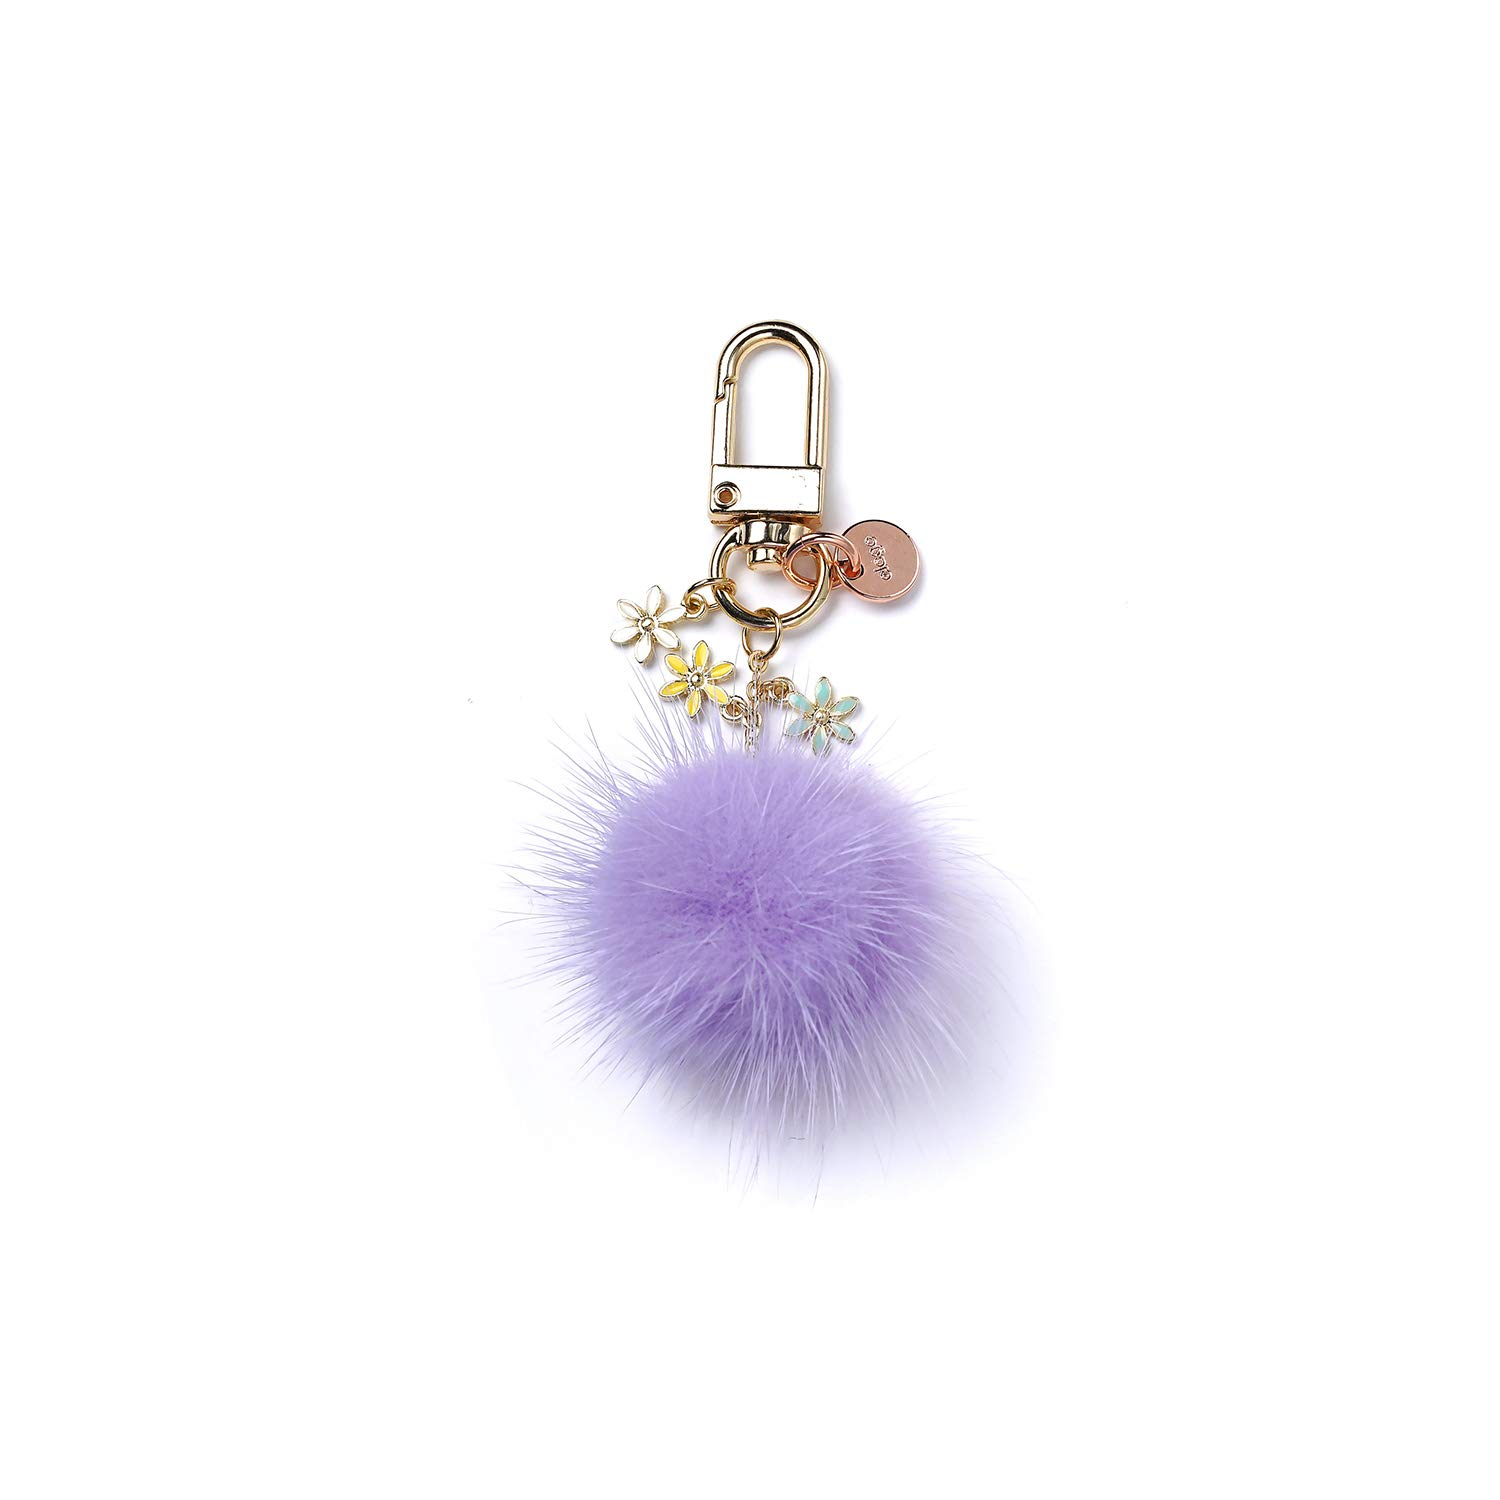 Charm for AirPods Car Tote Handbag Backpack Bag elago AirPods Keyring Violet Purse